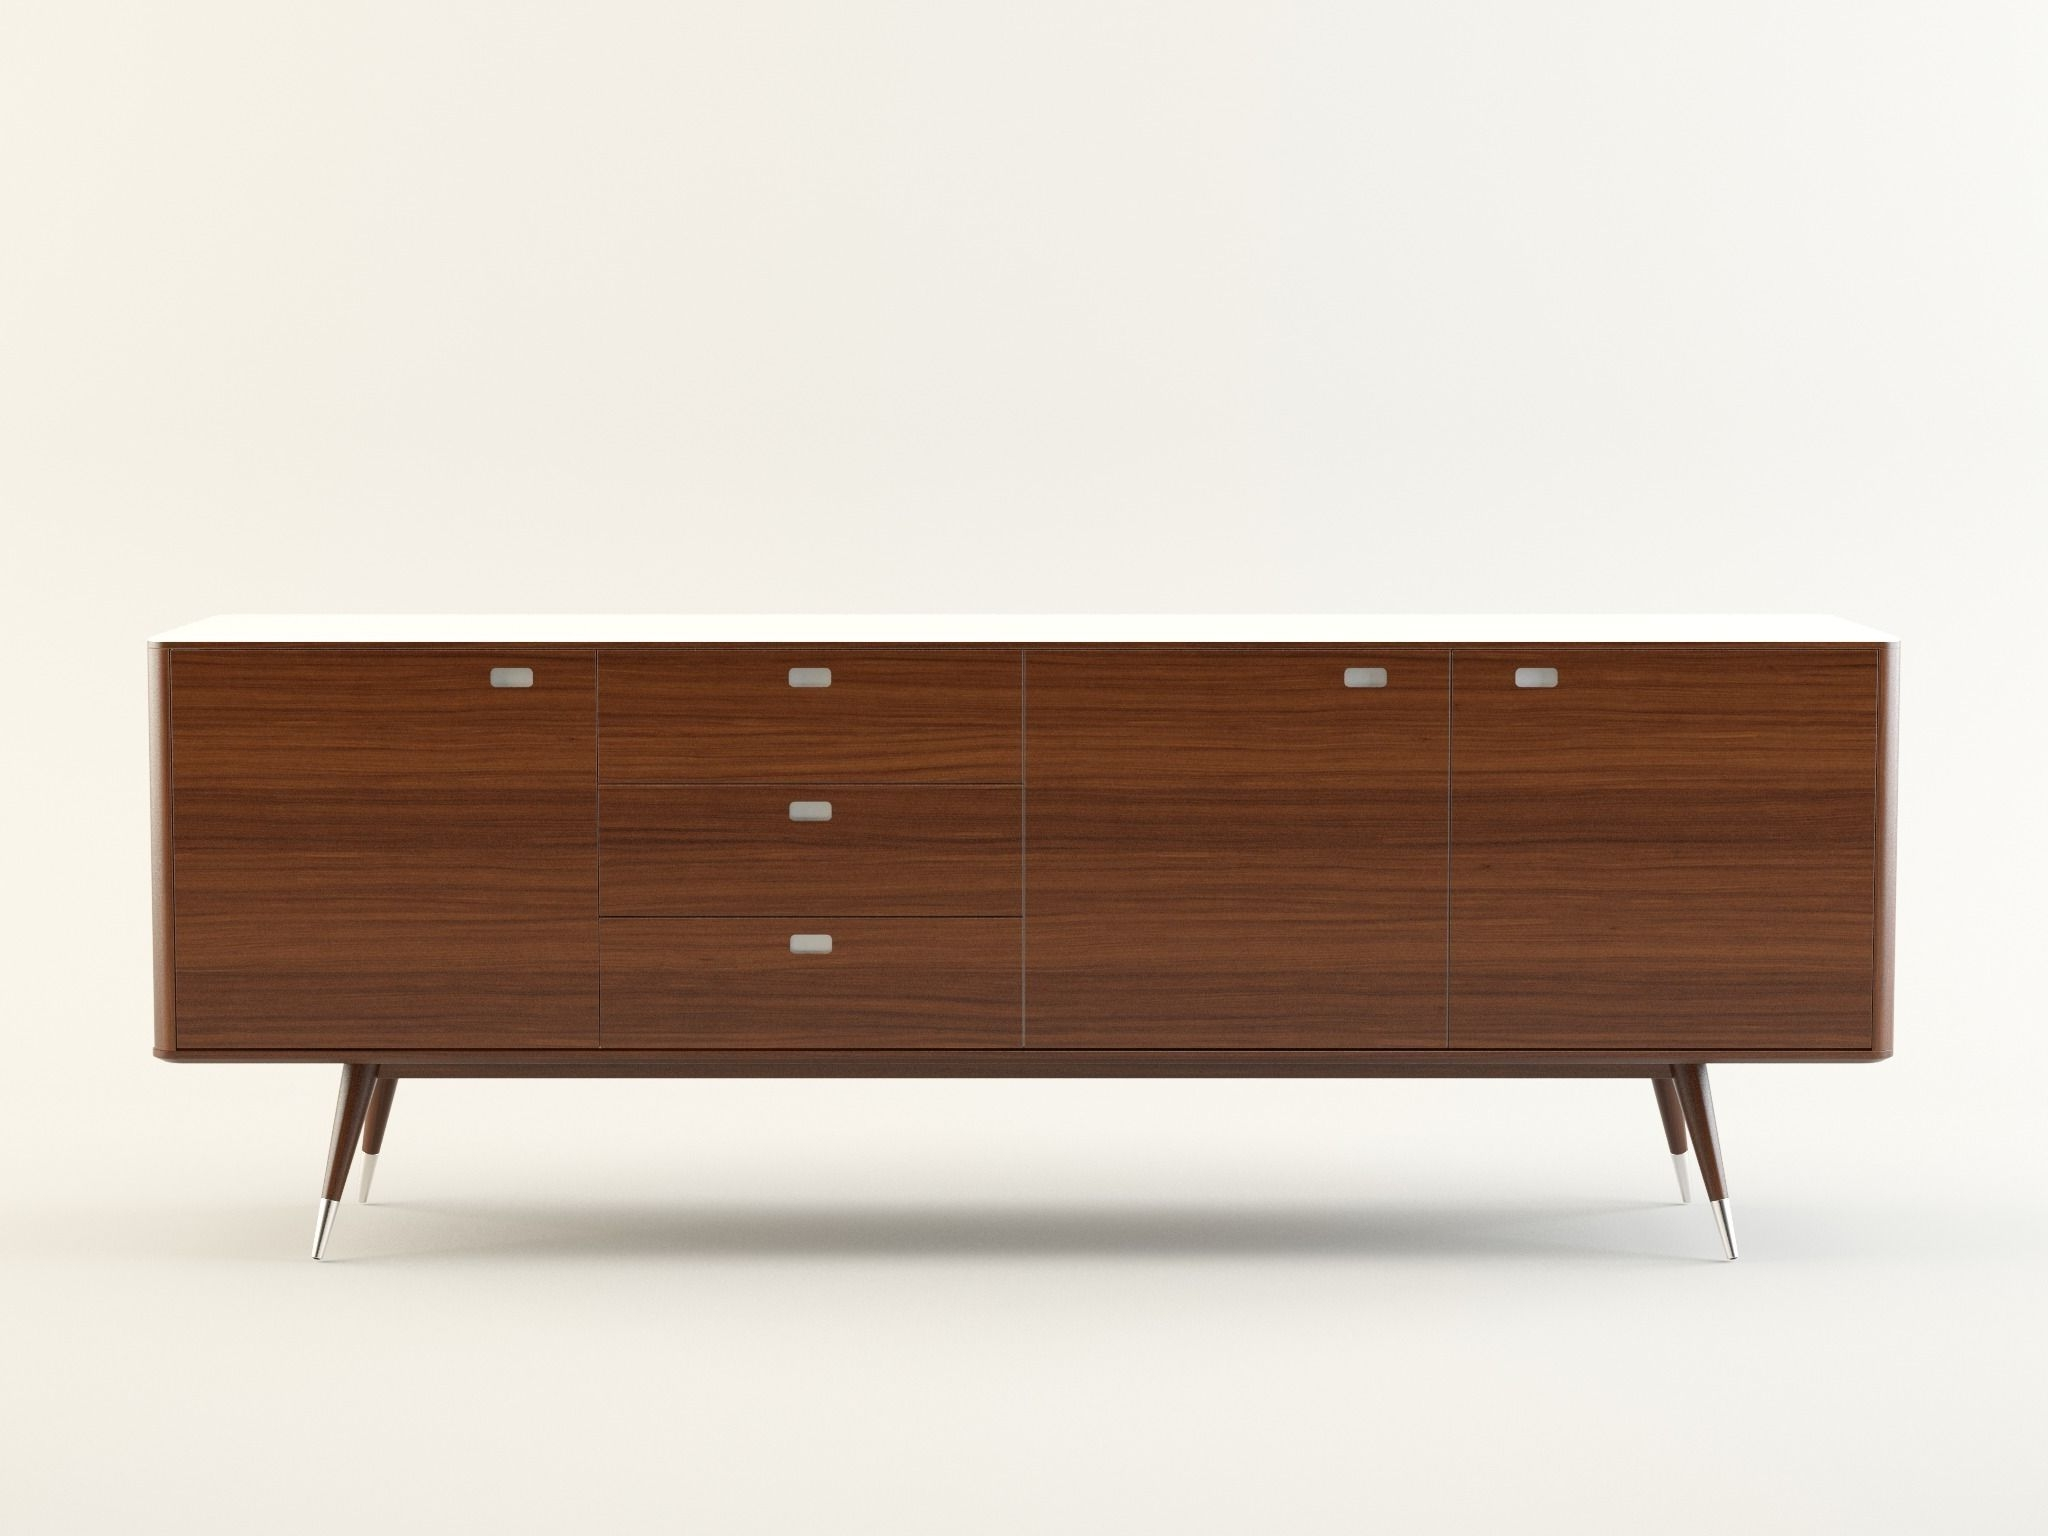 Danish Retro Sideboard 3D | Cgtrader Inside Danish Retro Sideboards (View 3 of 20)